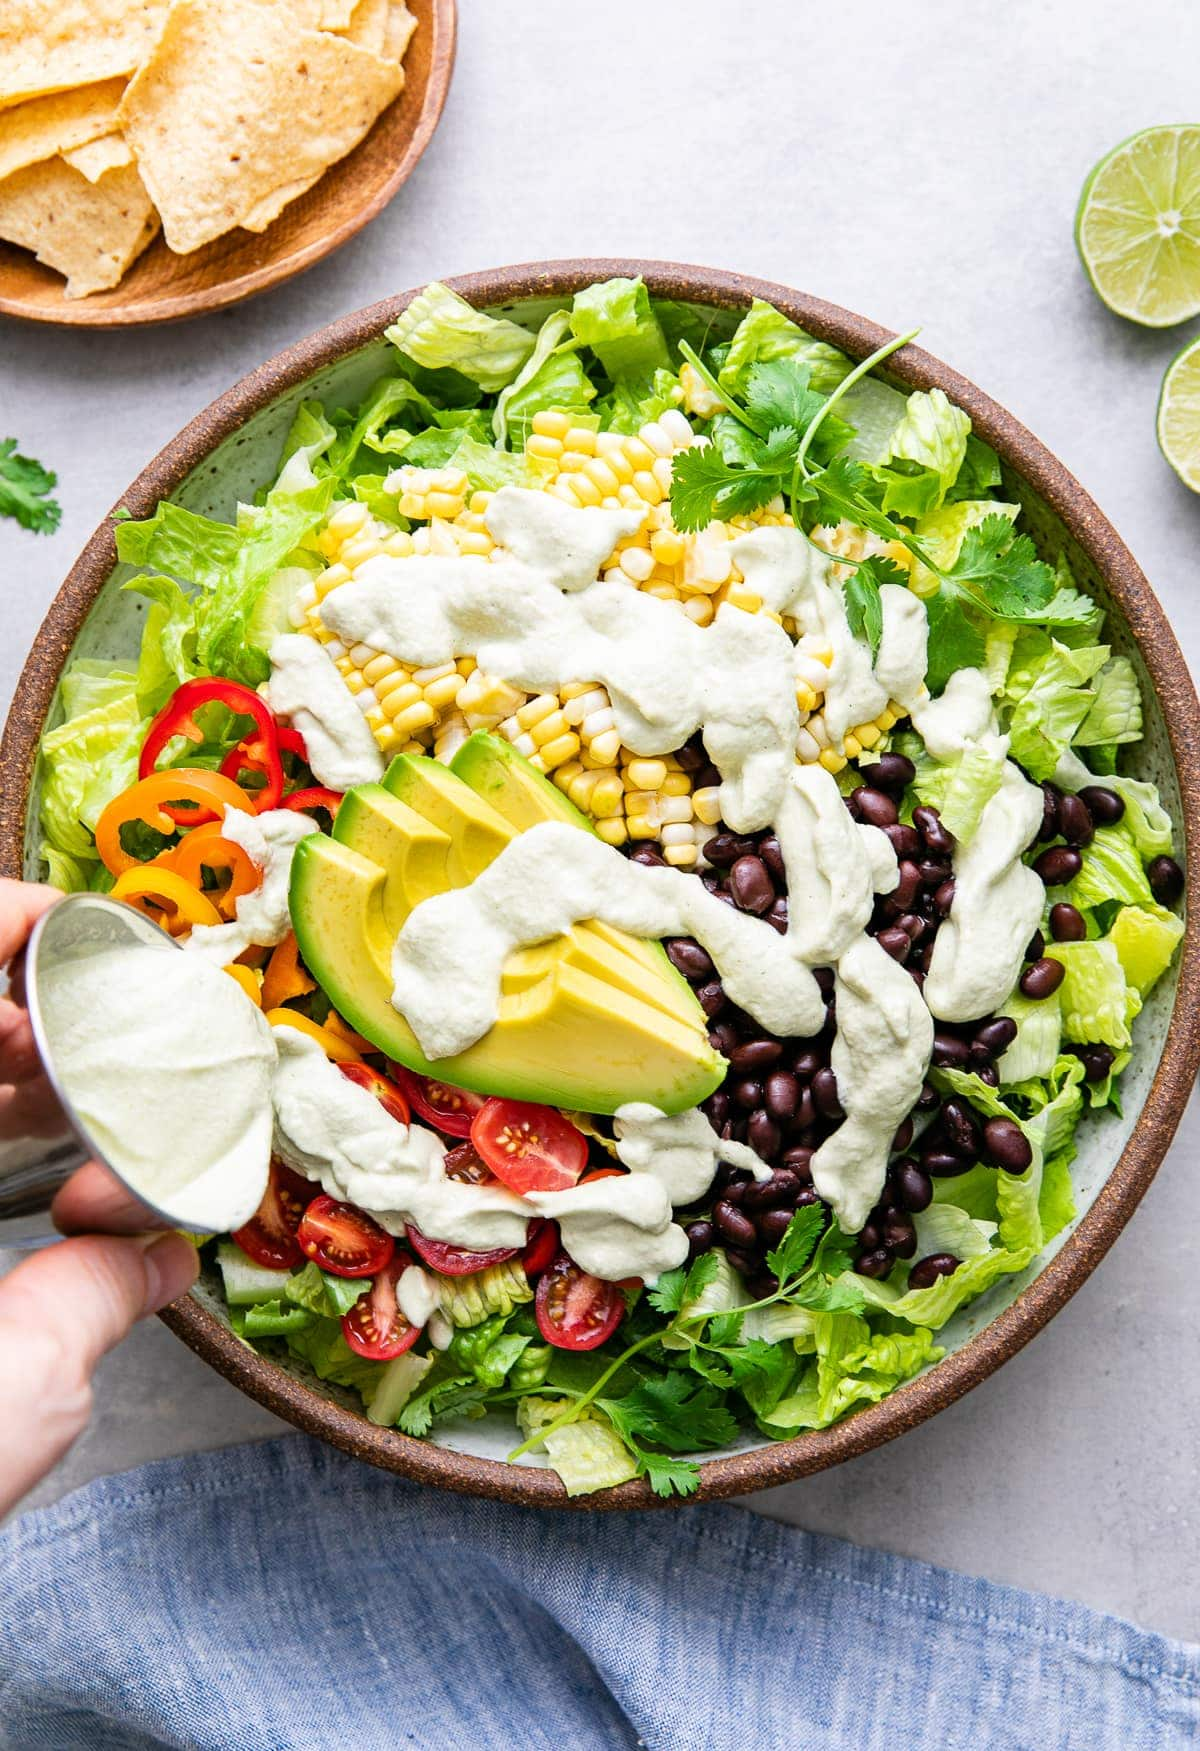 top down view showing creamy hatch ranch dressing being poured over southwestern salad.